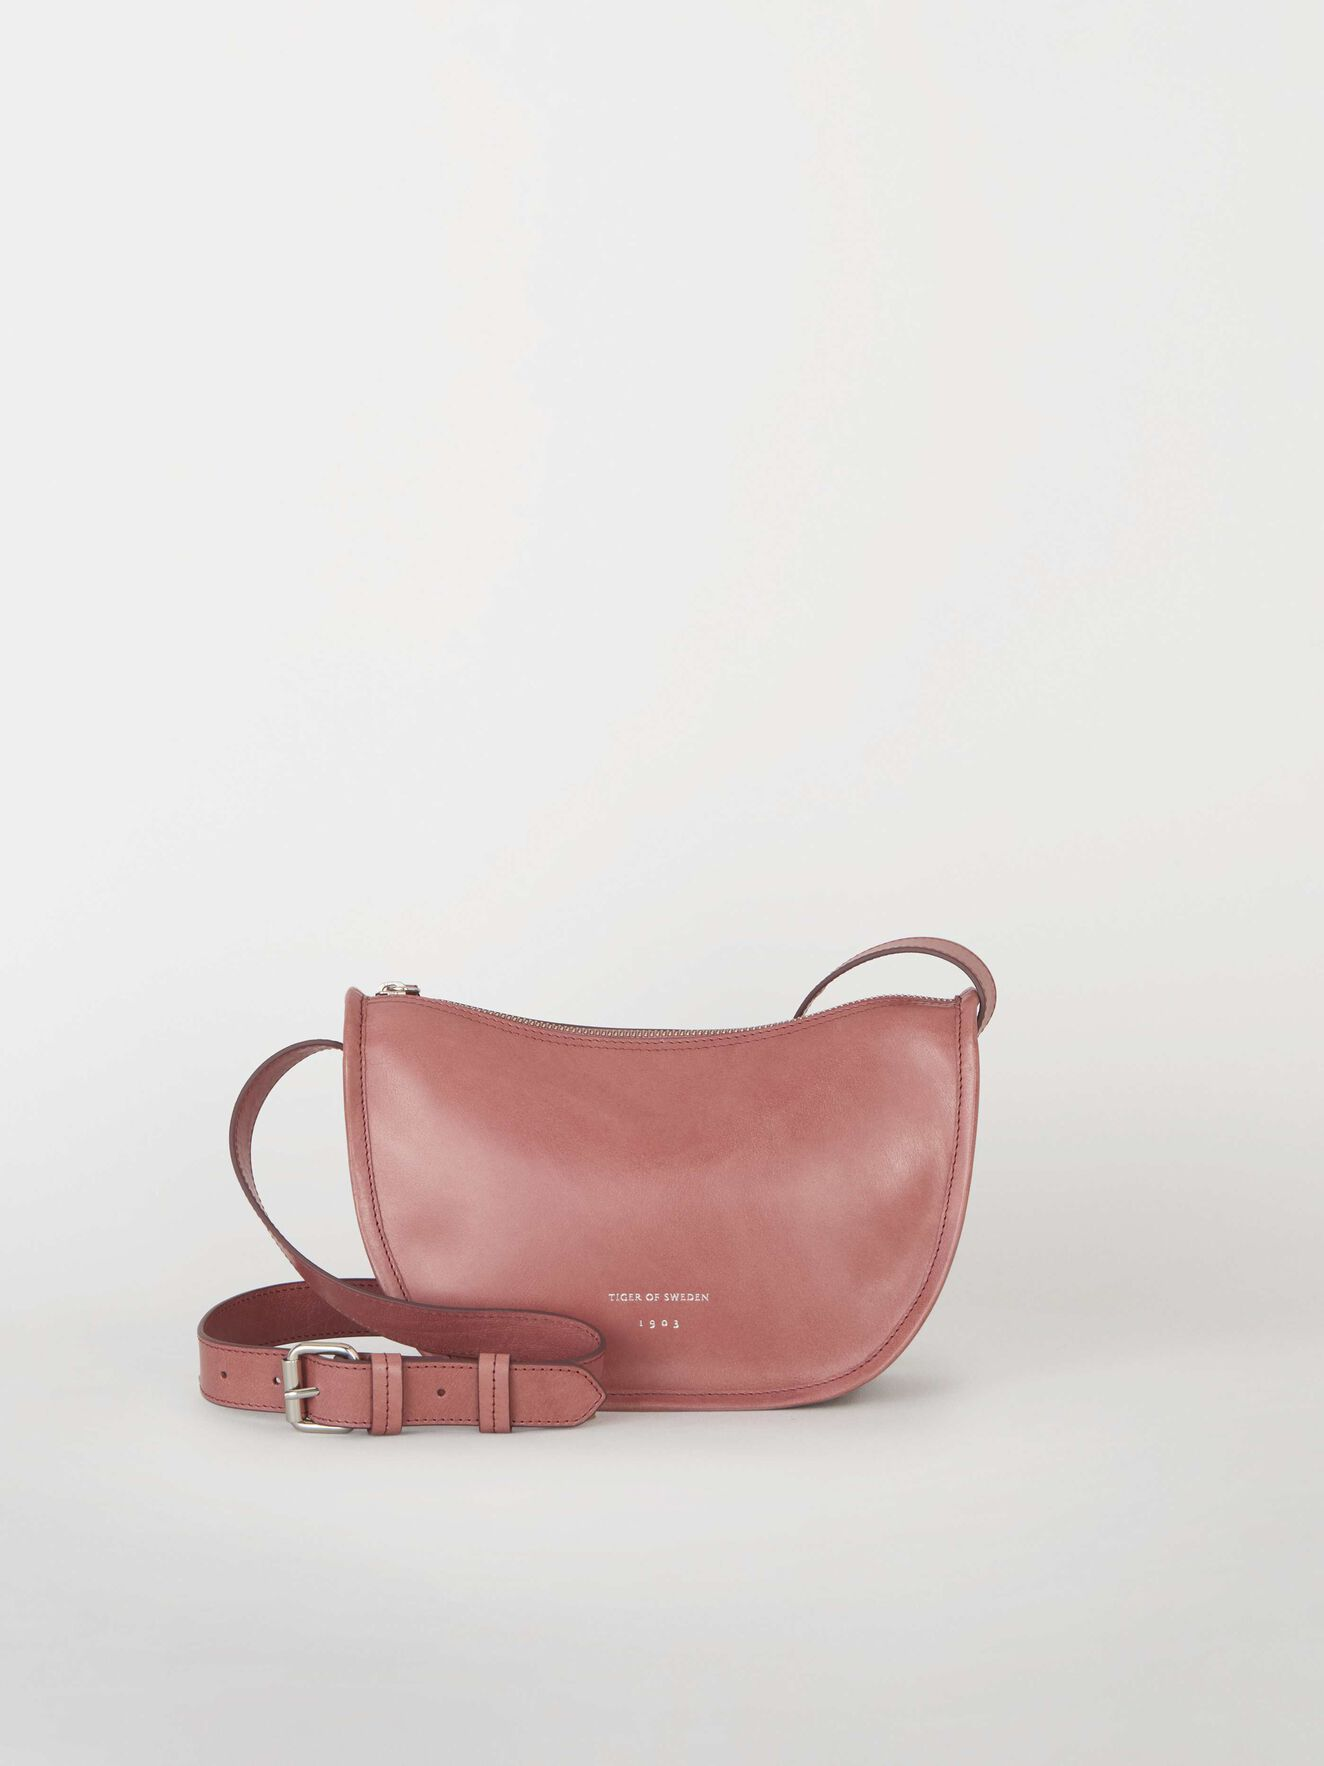 c80073eb558 Bag in soft grainy leather. Cronella Bag in Mellow Mulberry from Tiger of  Sweden